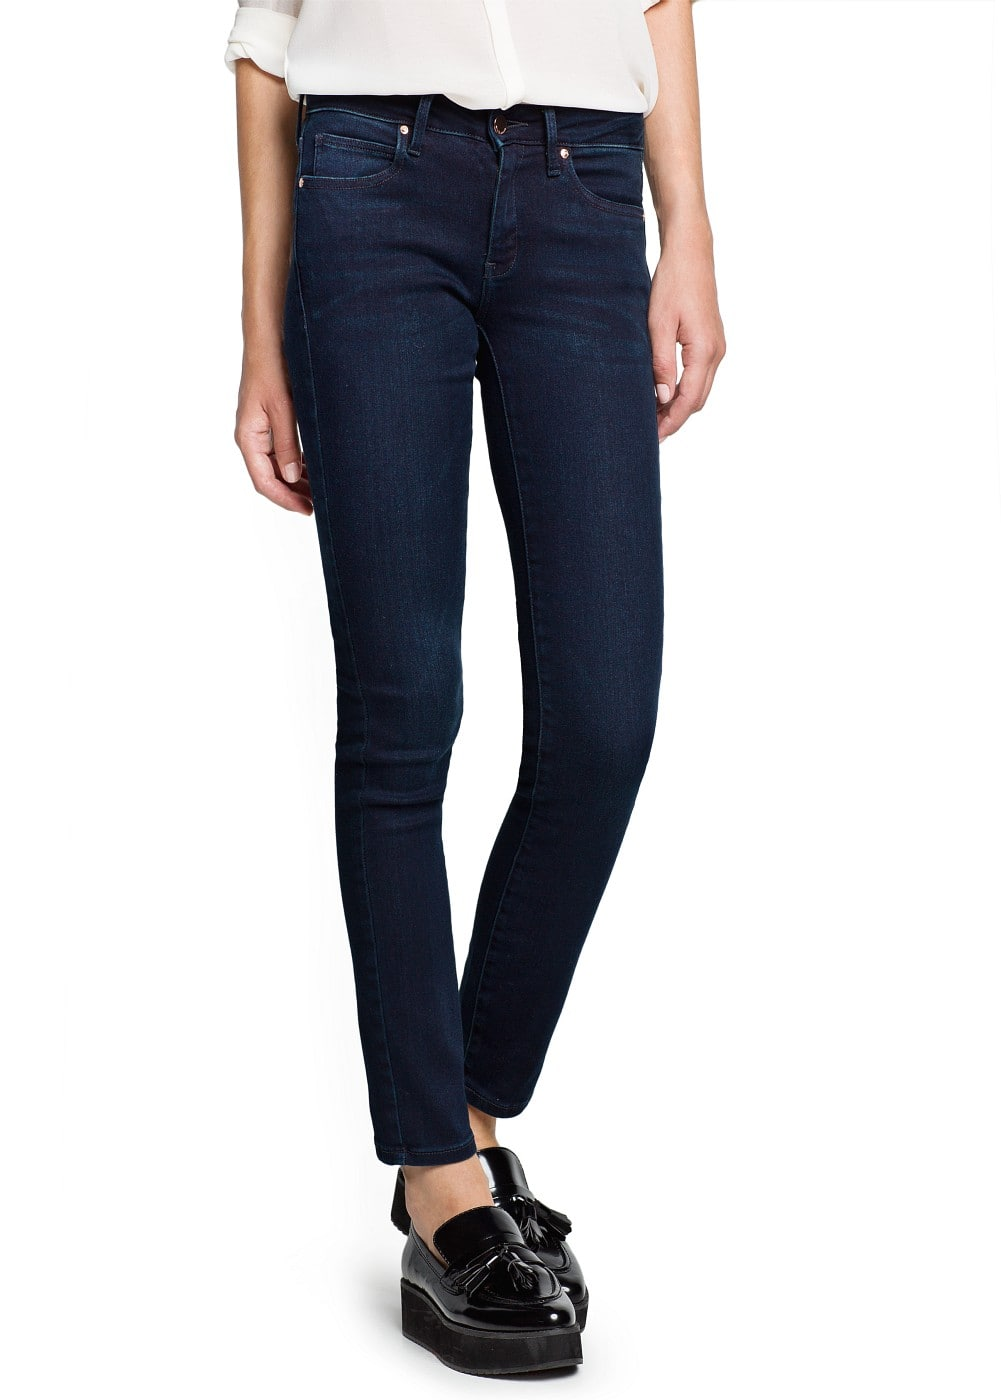 Super slim-fit dark Elektra jeans